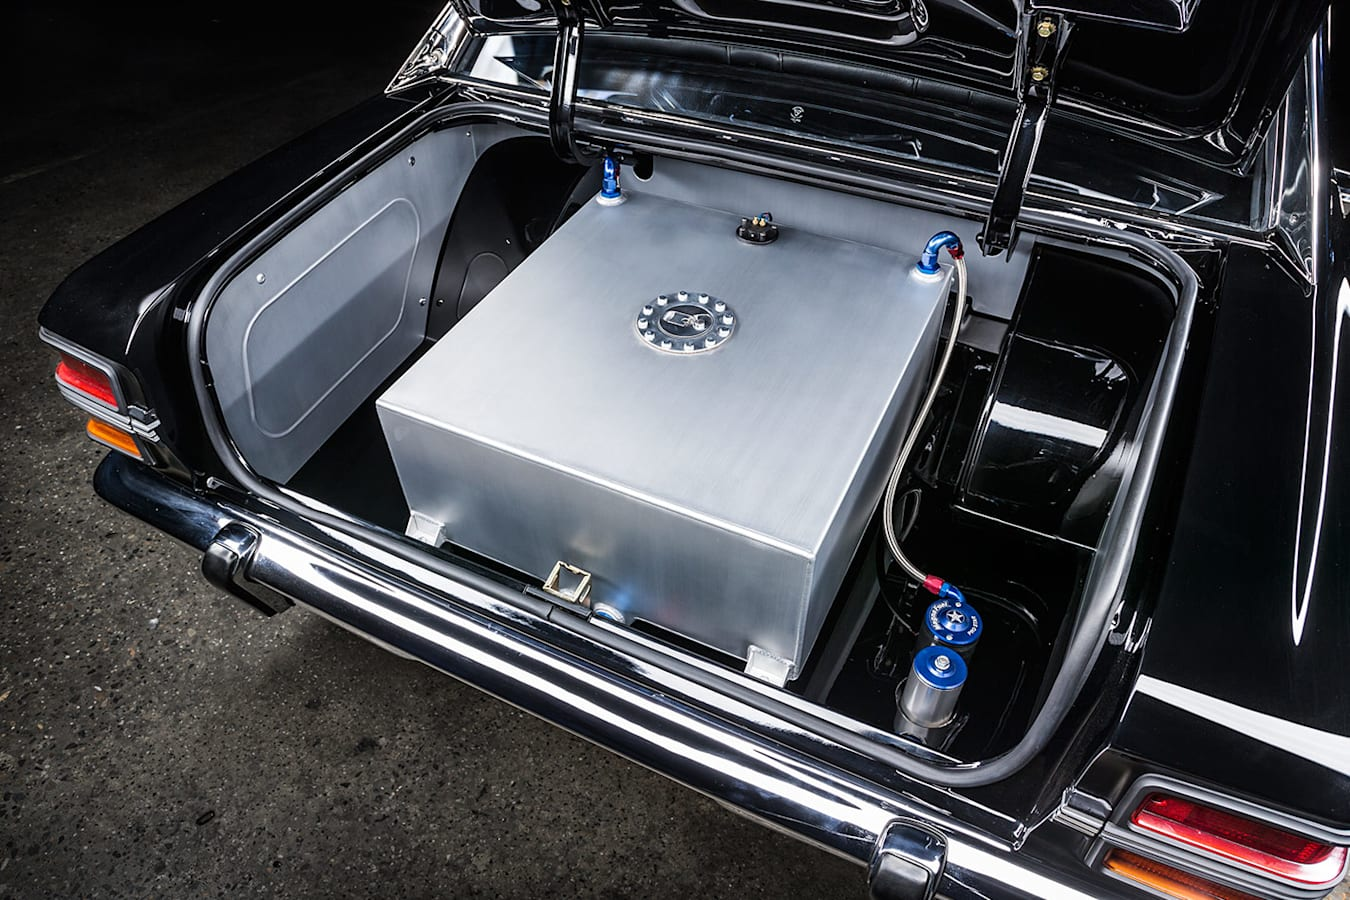 Ford Falcon XY boot